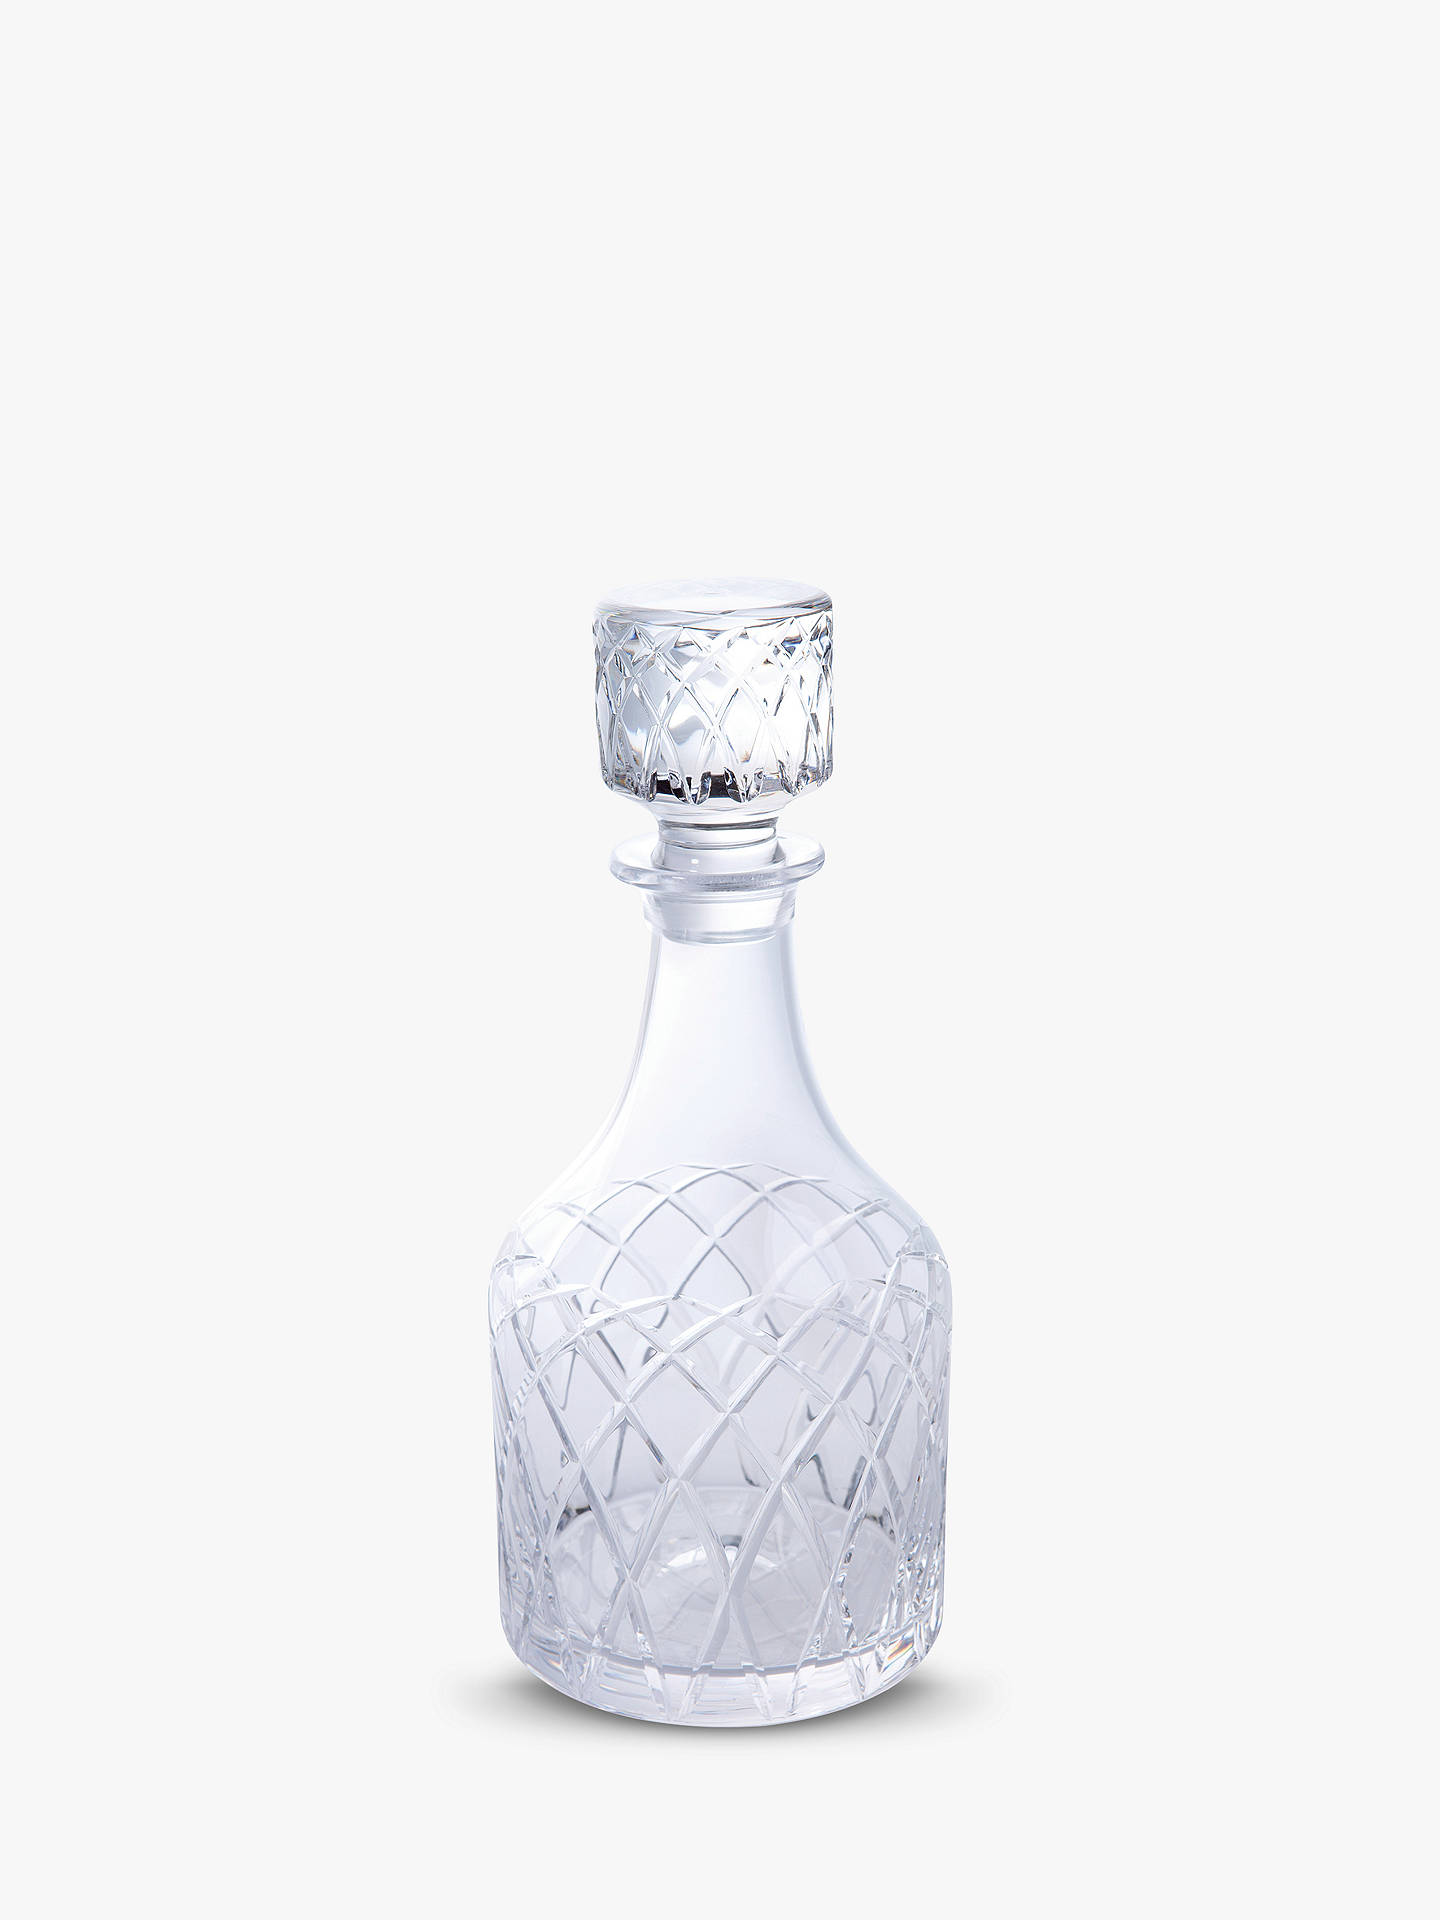 BuyRoyal Brierley Harris Cut Lead Crystal Spirit Decanter, Clear Online at johnlewis.com